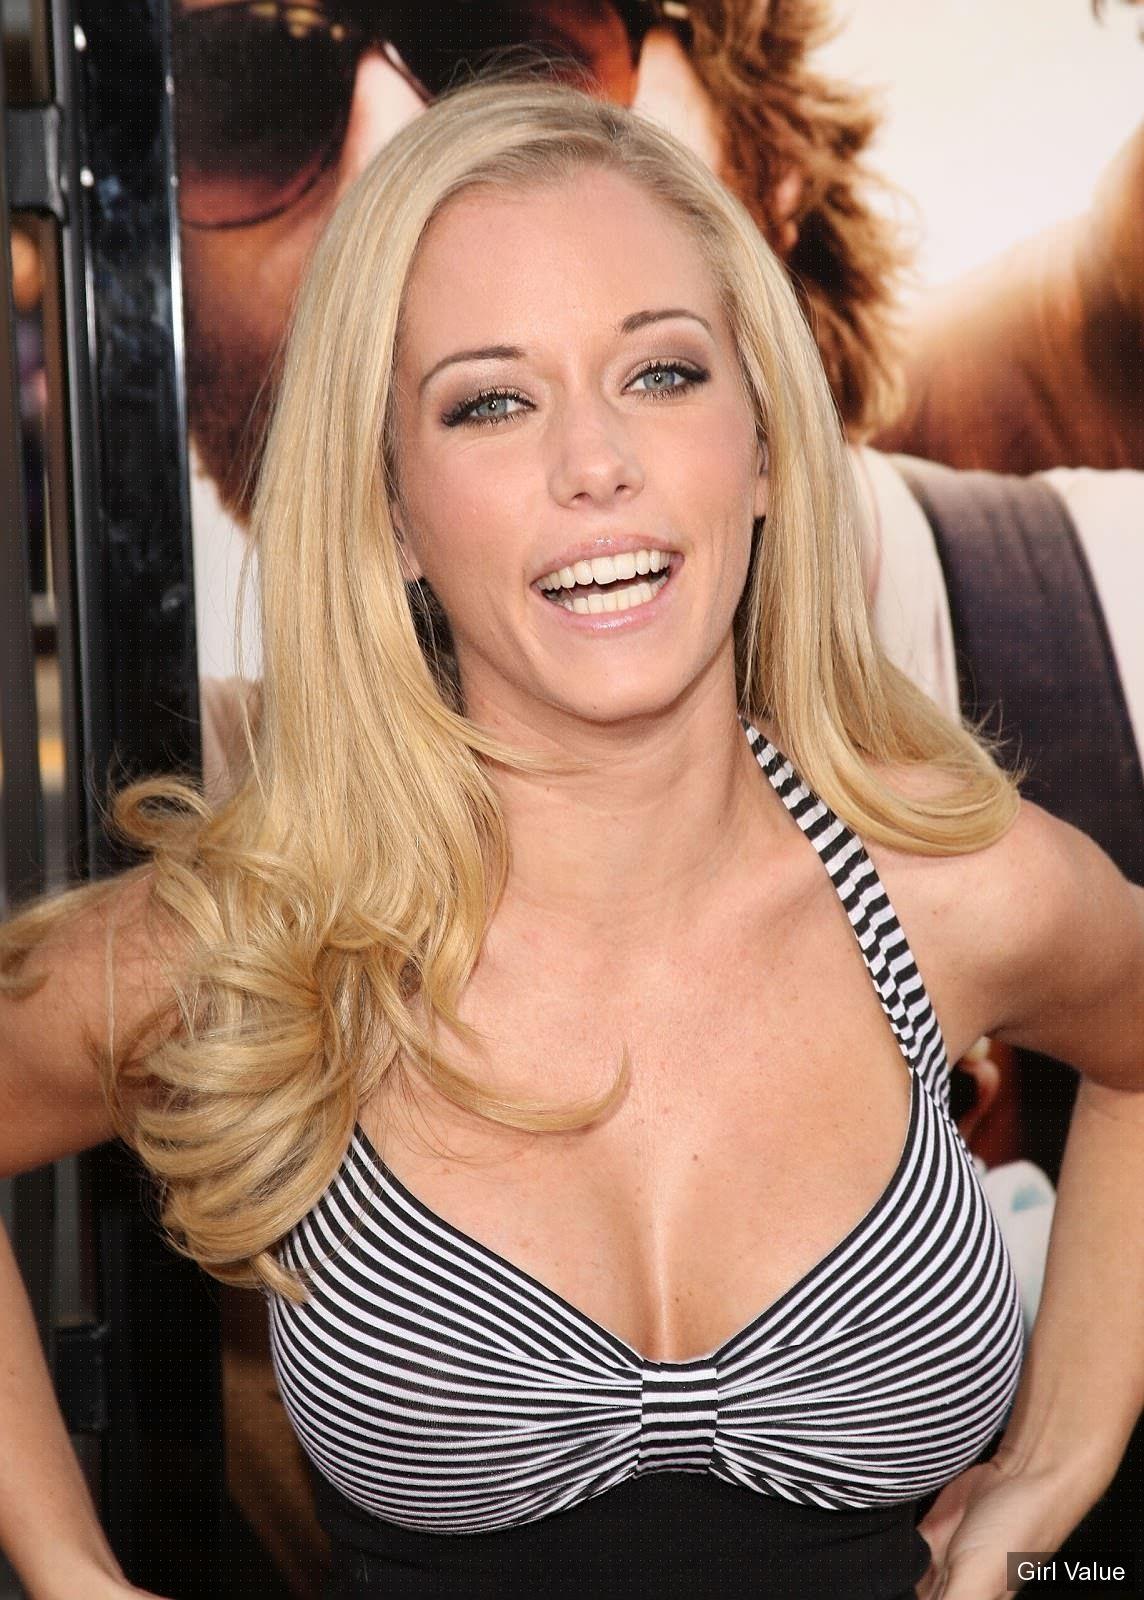 Kendra Wilkinson in tight black top blouse